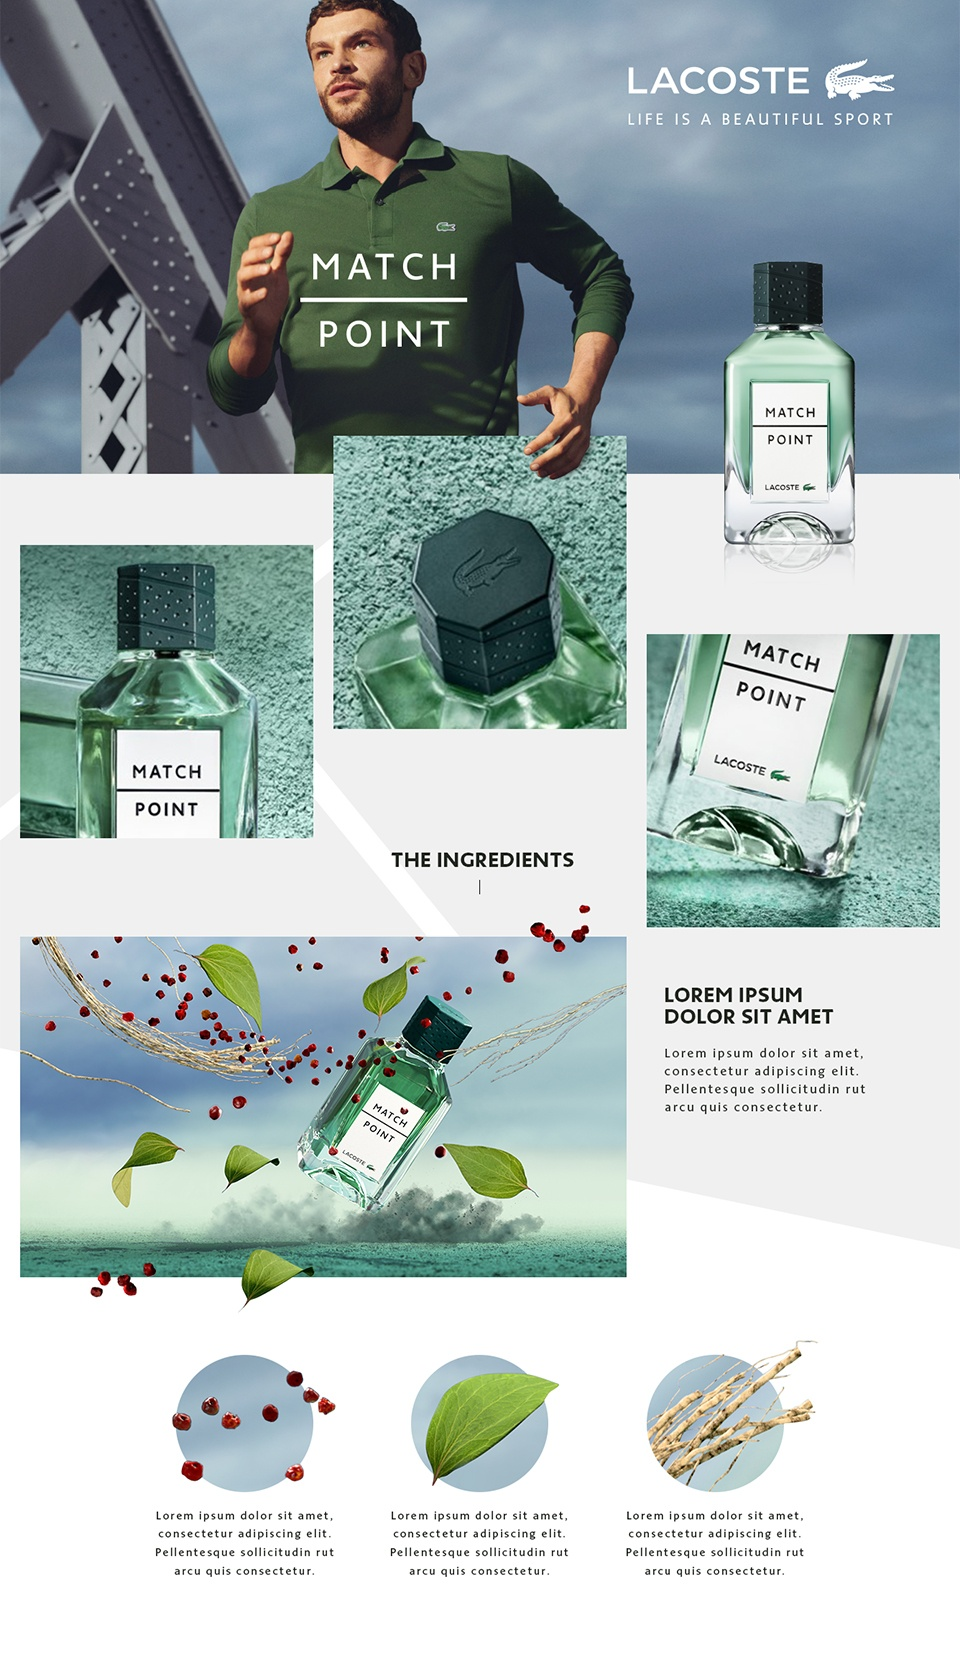 Lacoste / Match Point